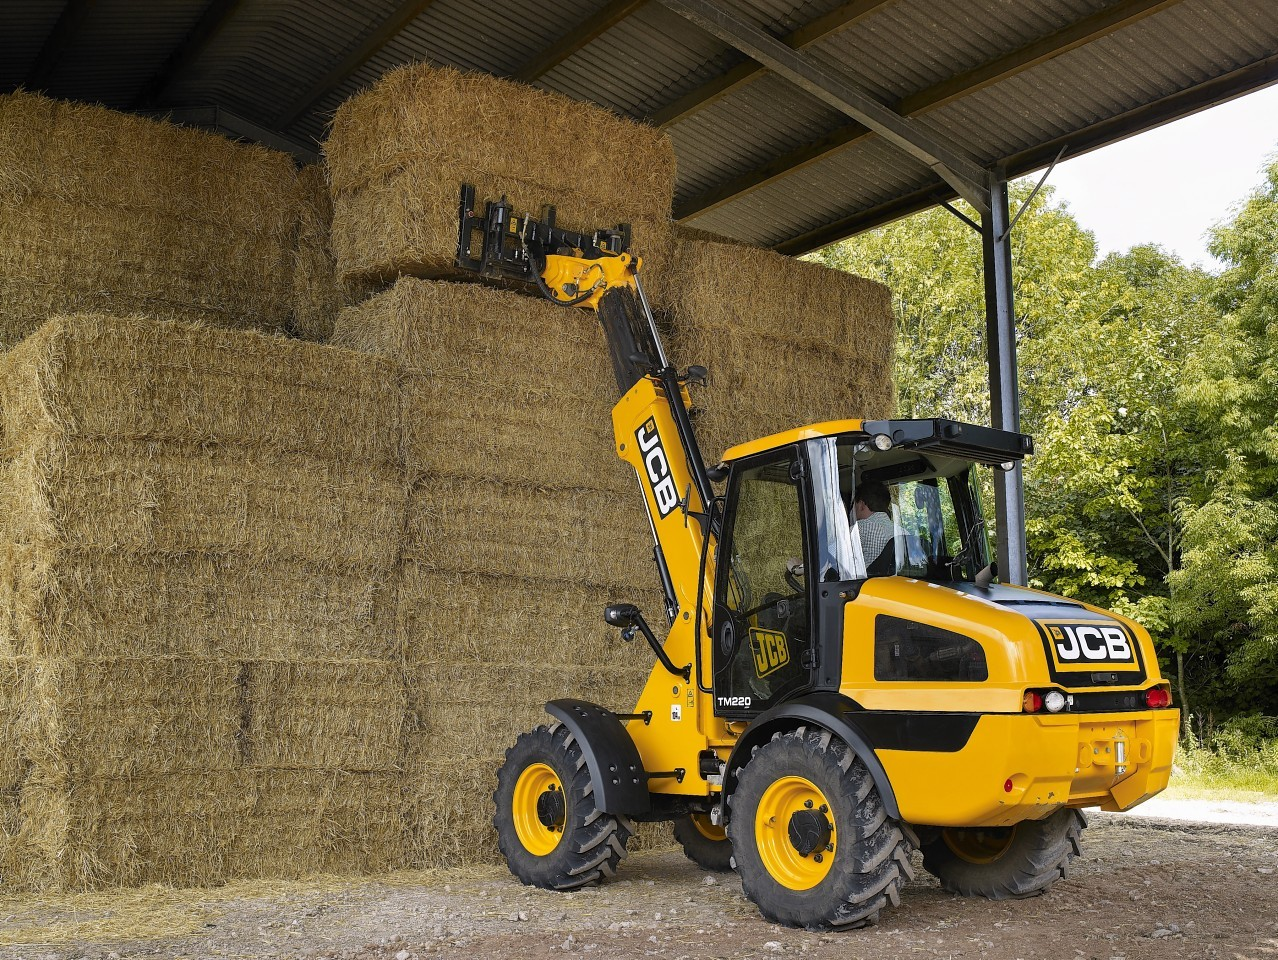 Spot prices for straw are up around £50 a tonne.